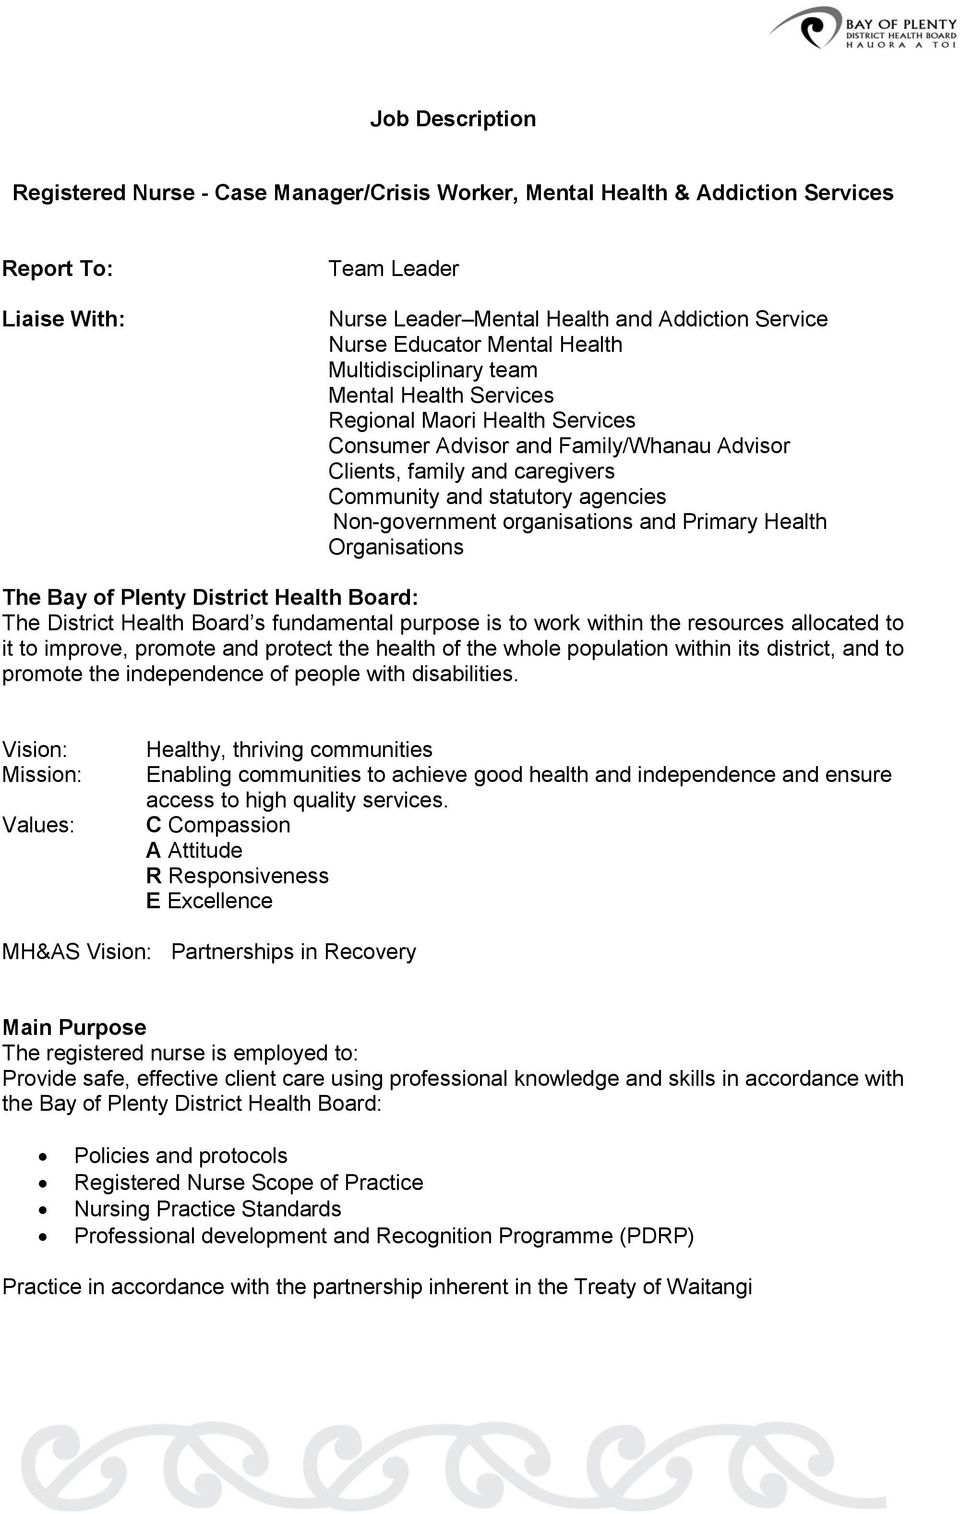 Non-government organisations and Primary Health Organisations The Bay of Plenty District Health Board: The District Health Board s fundamental purpose is to work within the resources allocated to it